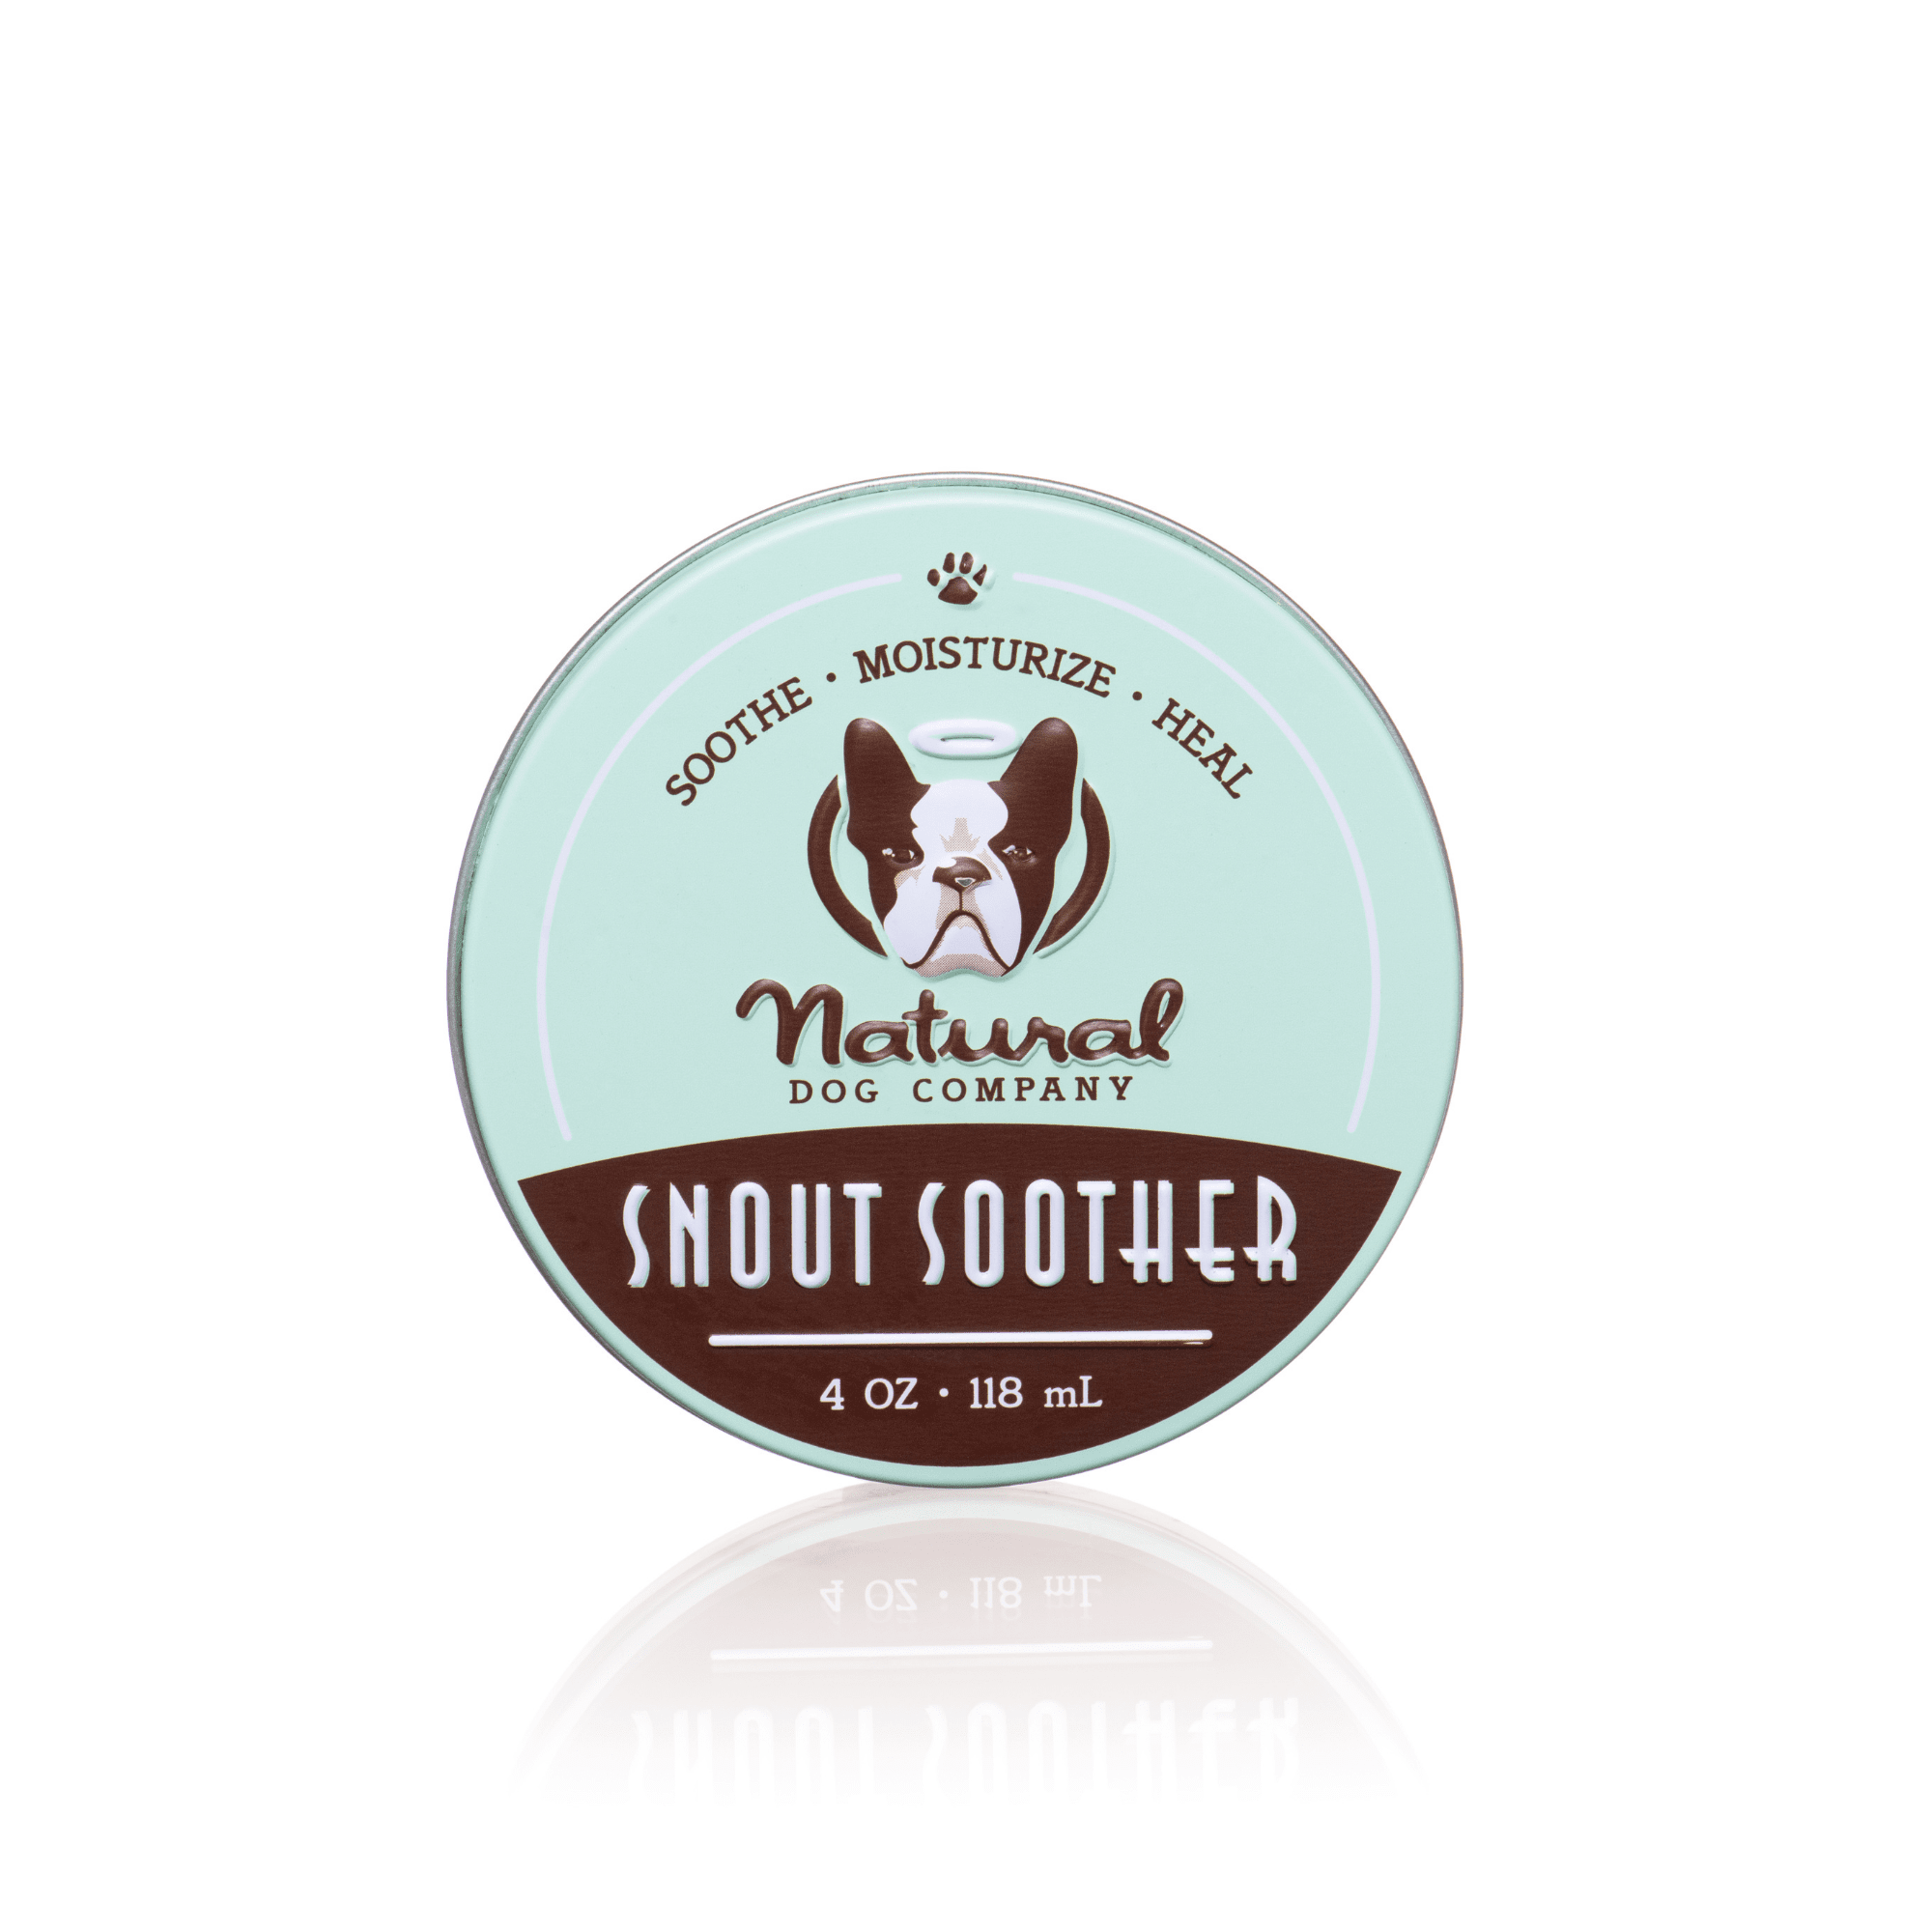 Natural Dog Company Snout Soother 4oz tin